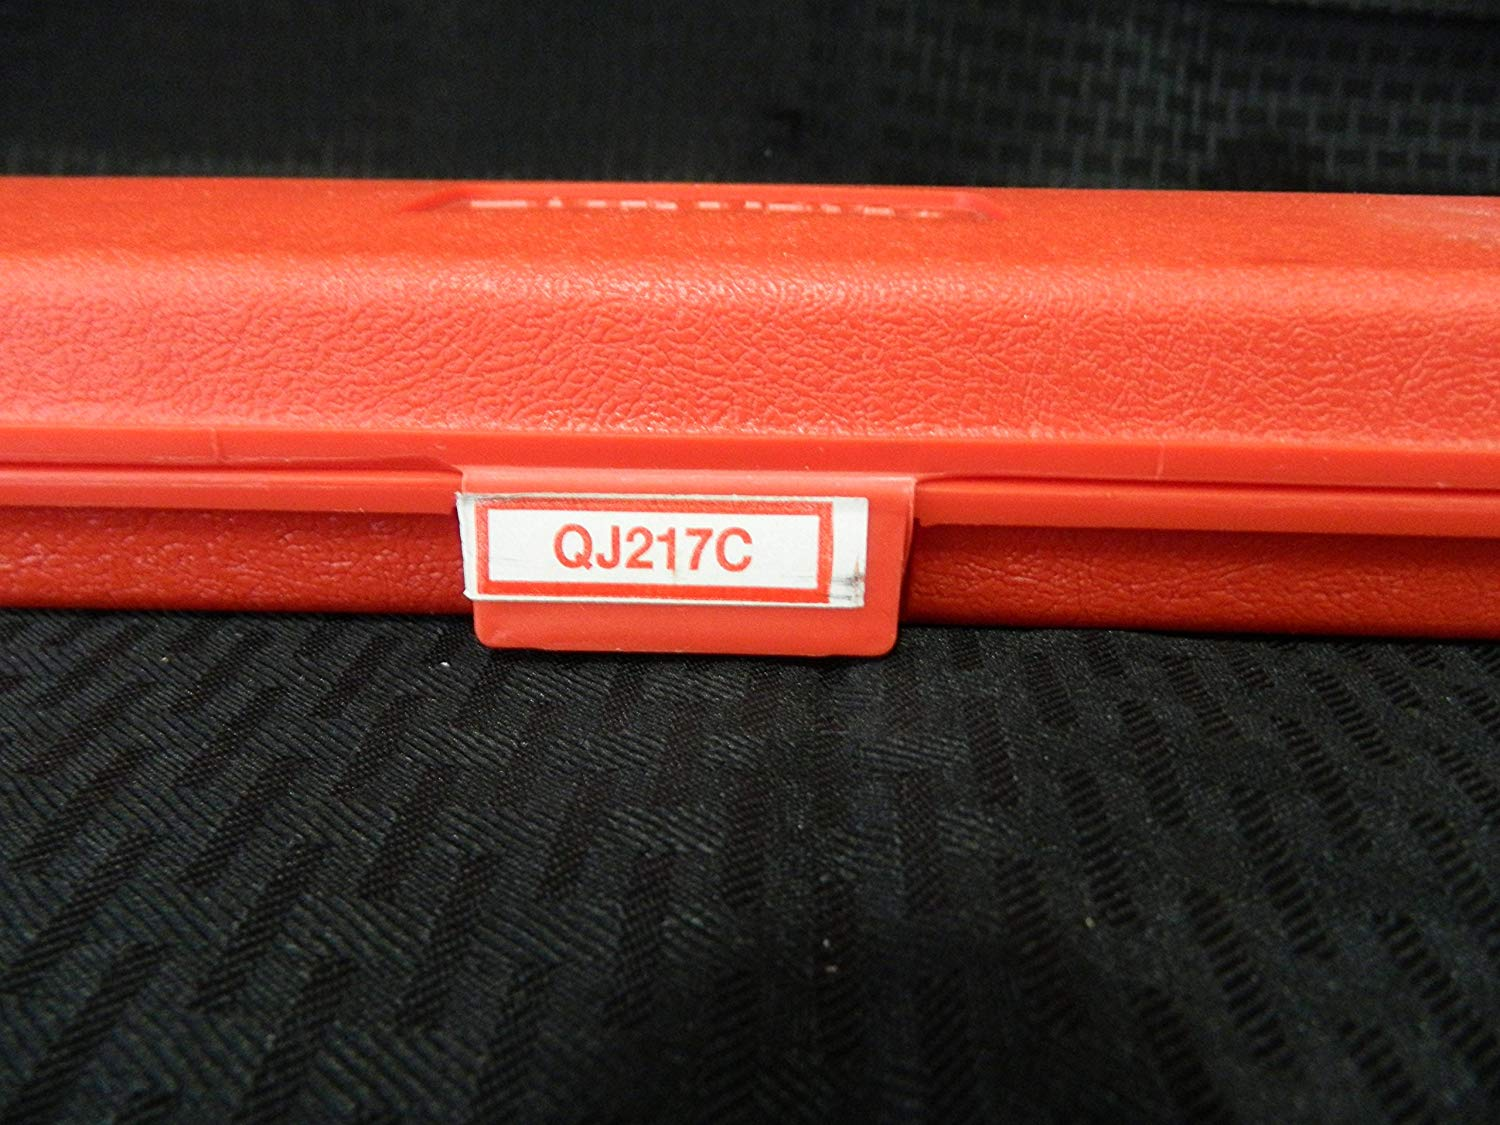 """Snap-On 3/8"""" Drive Click Type Ratcheting Torque Wrench 30-200 In-Lb, Vintage/Rare in this Condition, Part #QJ217C"""